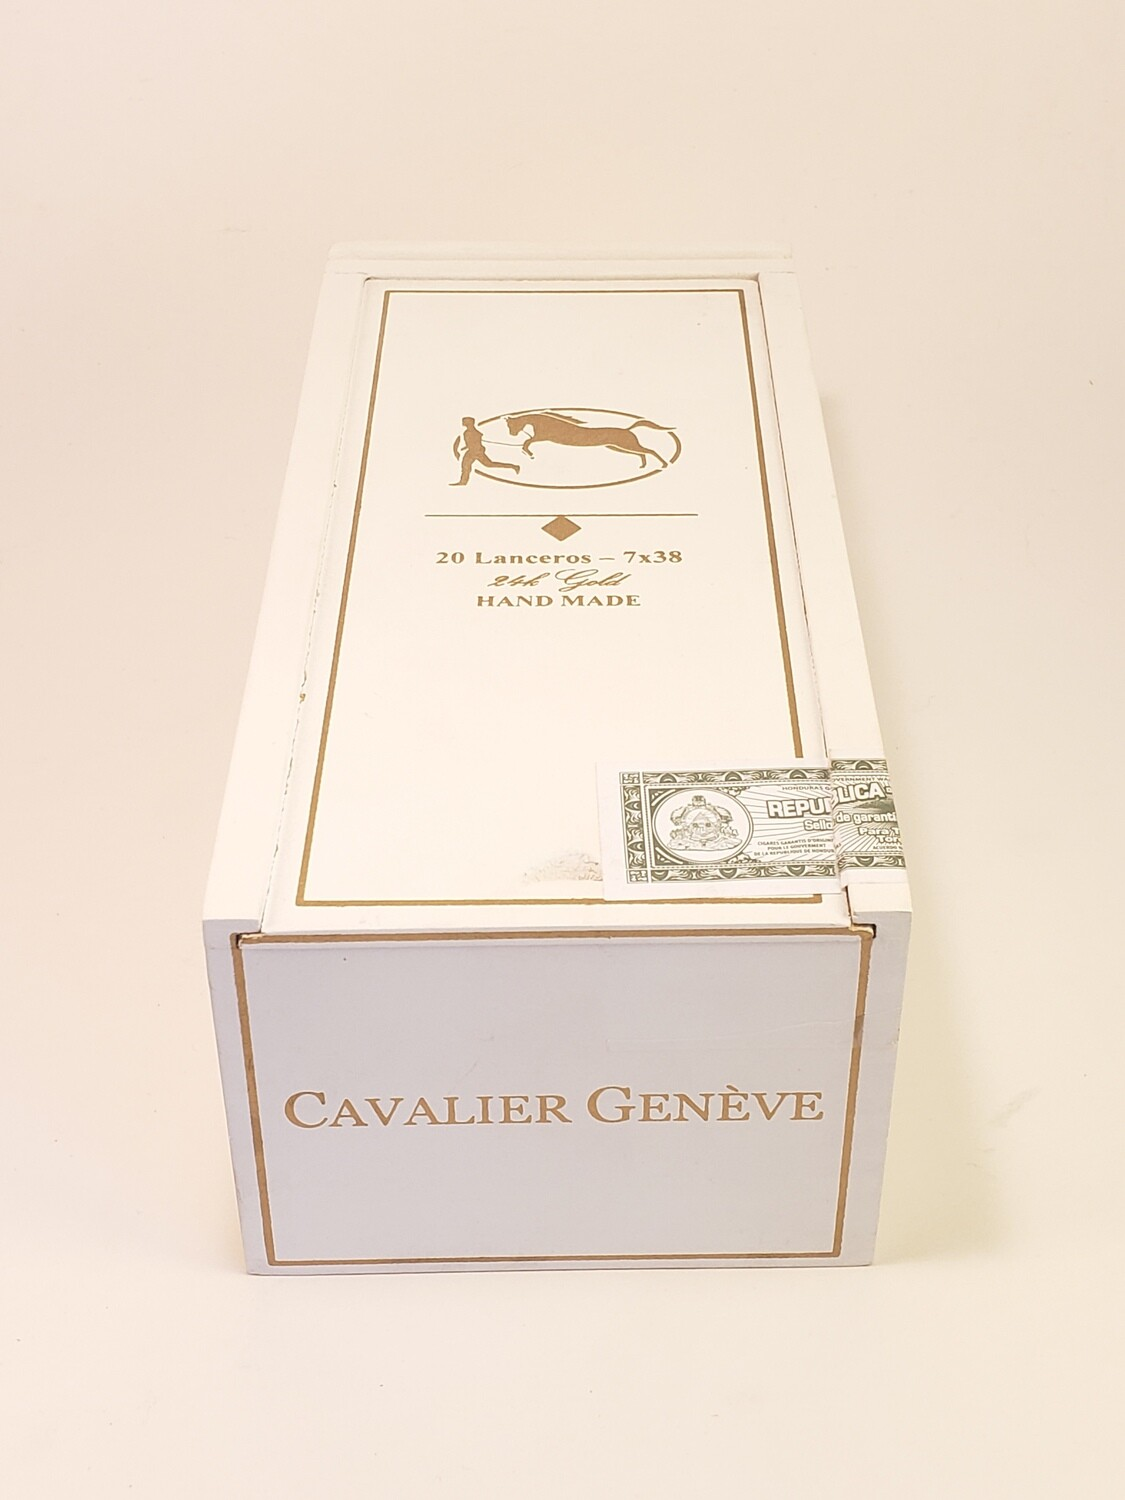 Cavalier Geneve Small Batch White Series Lancero 7 x 38 Box